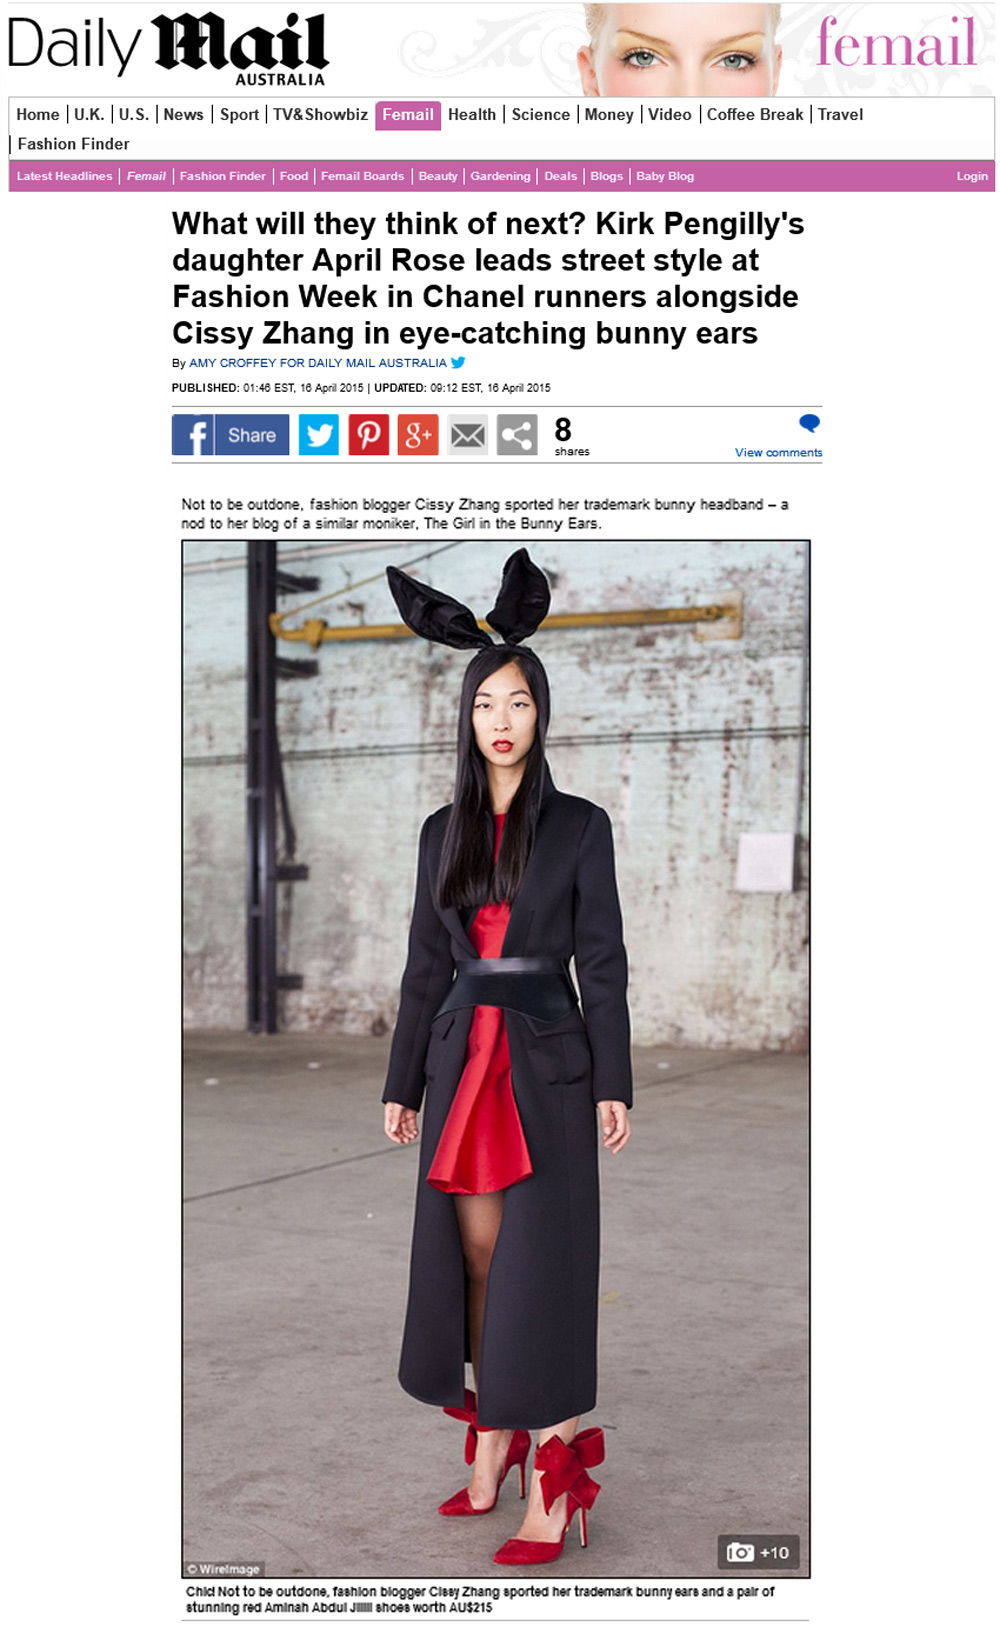 cisys zhang, dailymail, girl in the bunny ears, press